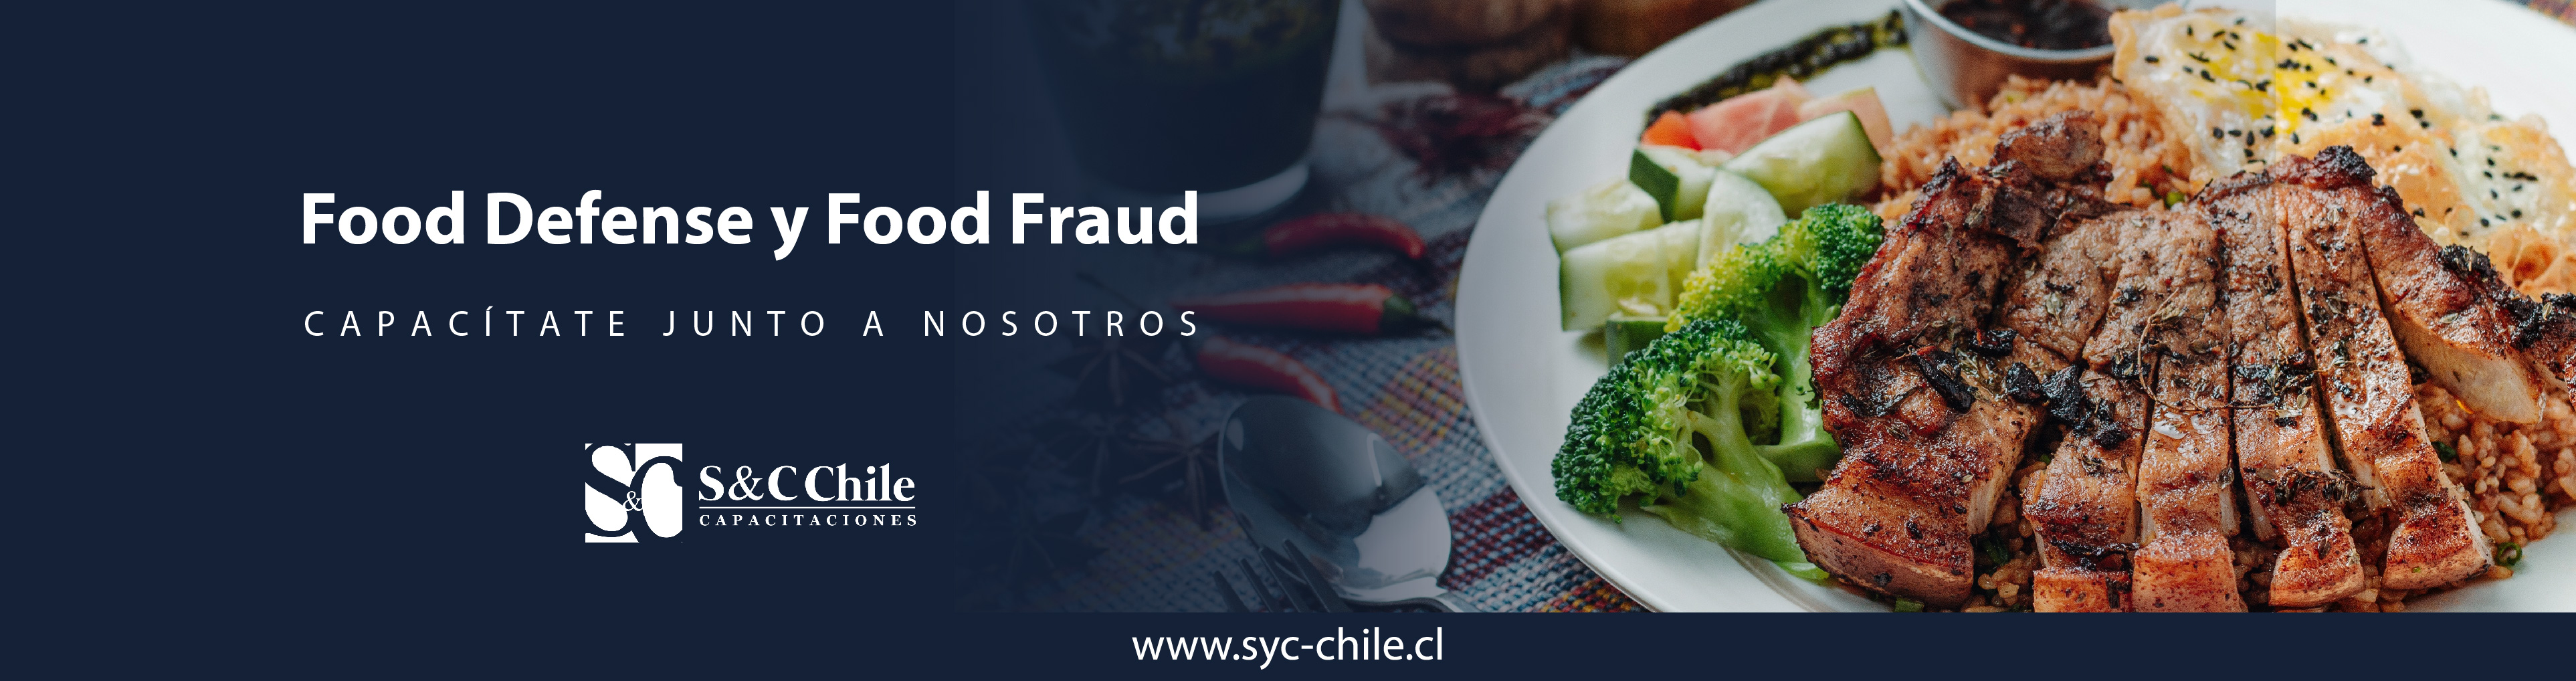 Course image for Food Defense y Food Fraud (SYC CHILE)